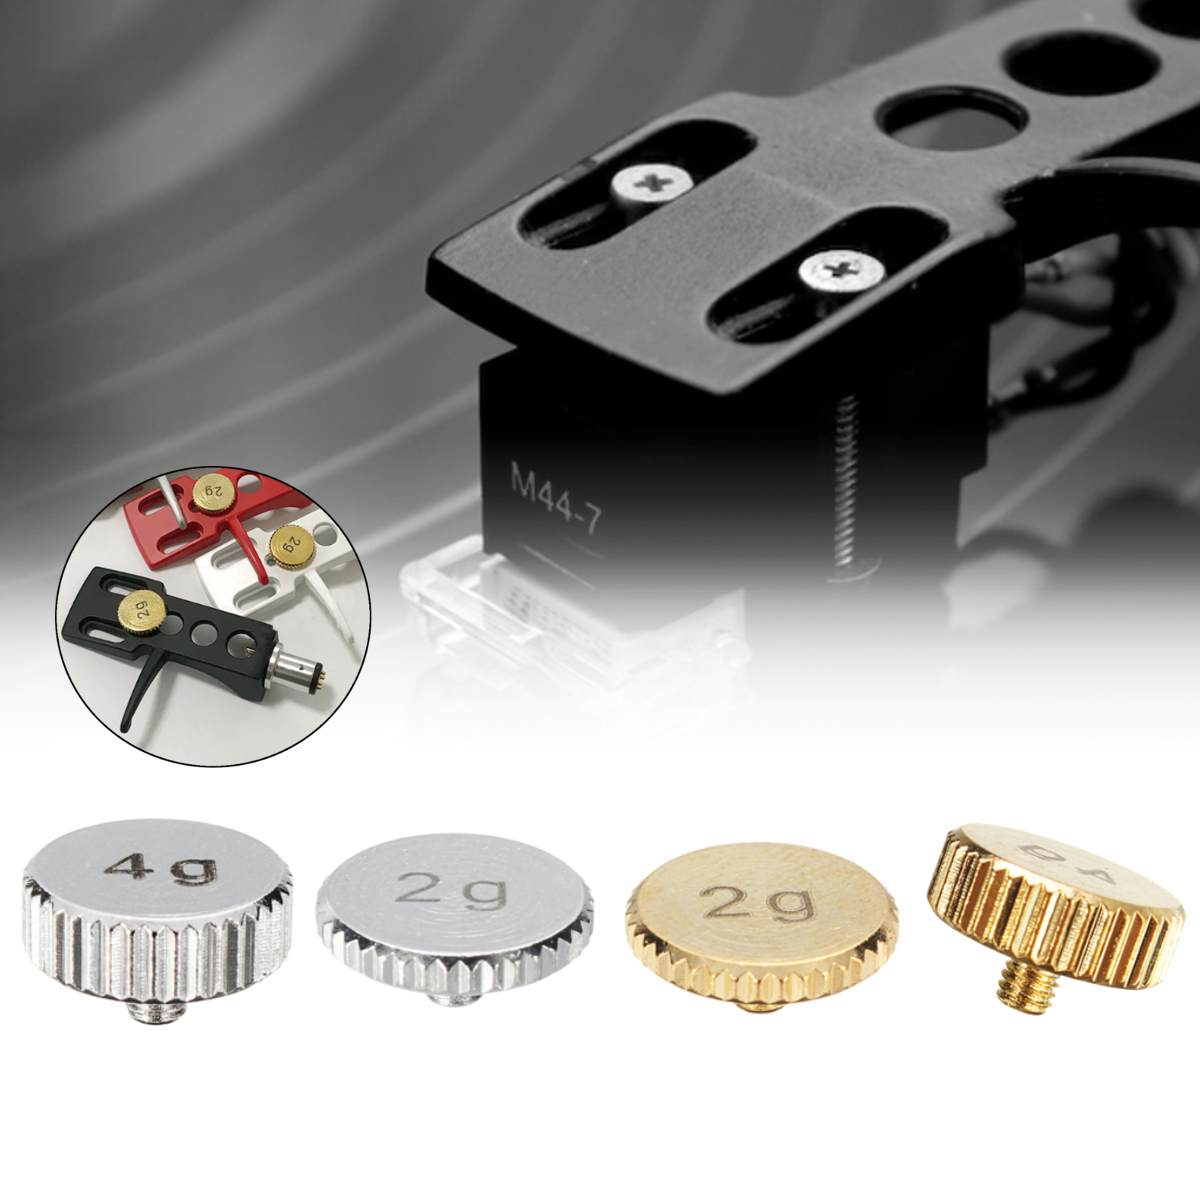 2/4g Sliver Gold Shell Weight Headshell For Technics SL1200 SL1210 MK 2 3 5 M5G Turntabable Metal Electric Instrument Parts